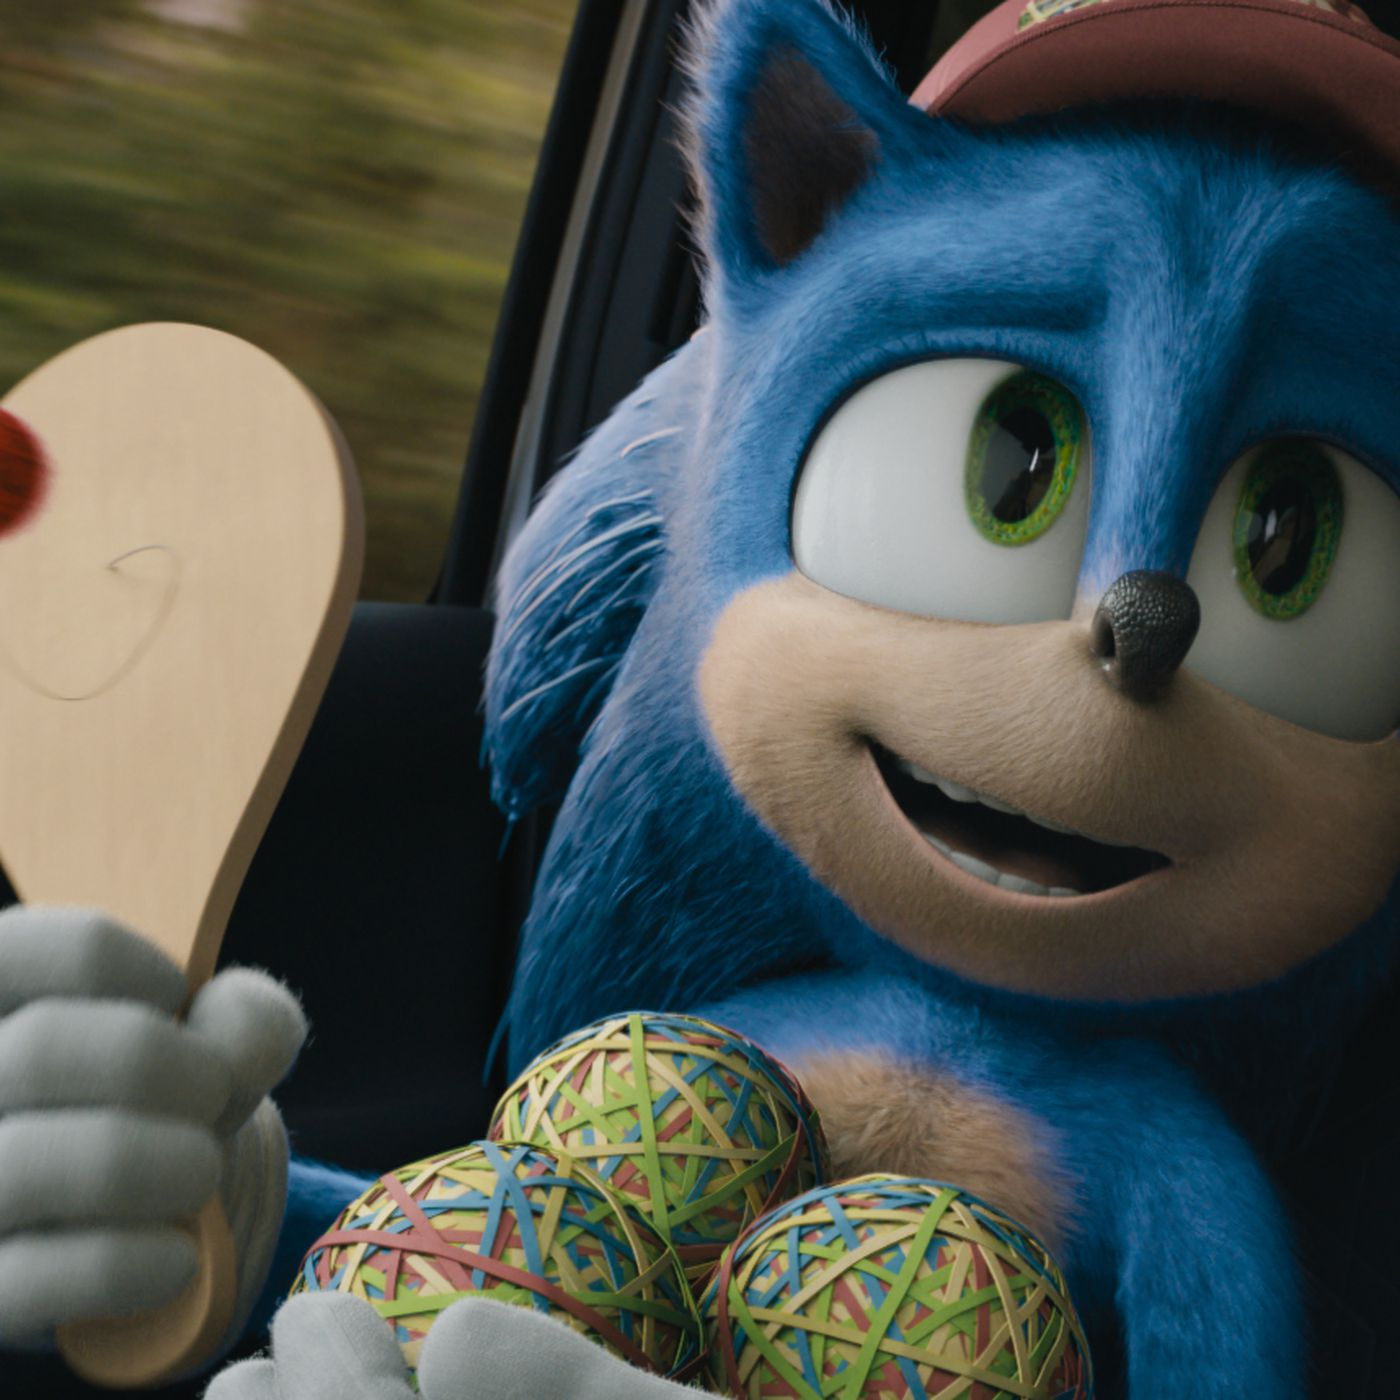 Sonic S Post Credit Scene Is The Perfect Tail Ending And Sequel Tease Polygon